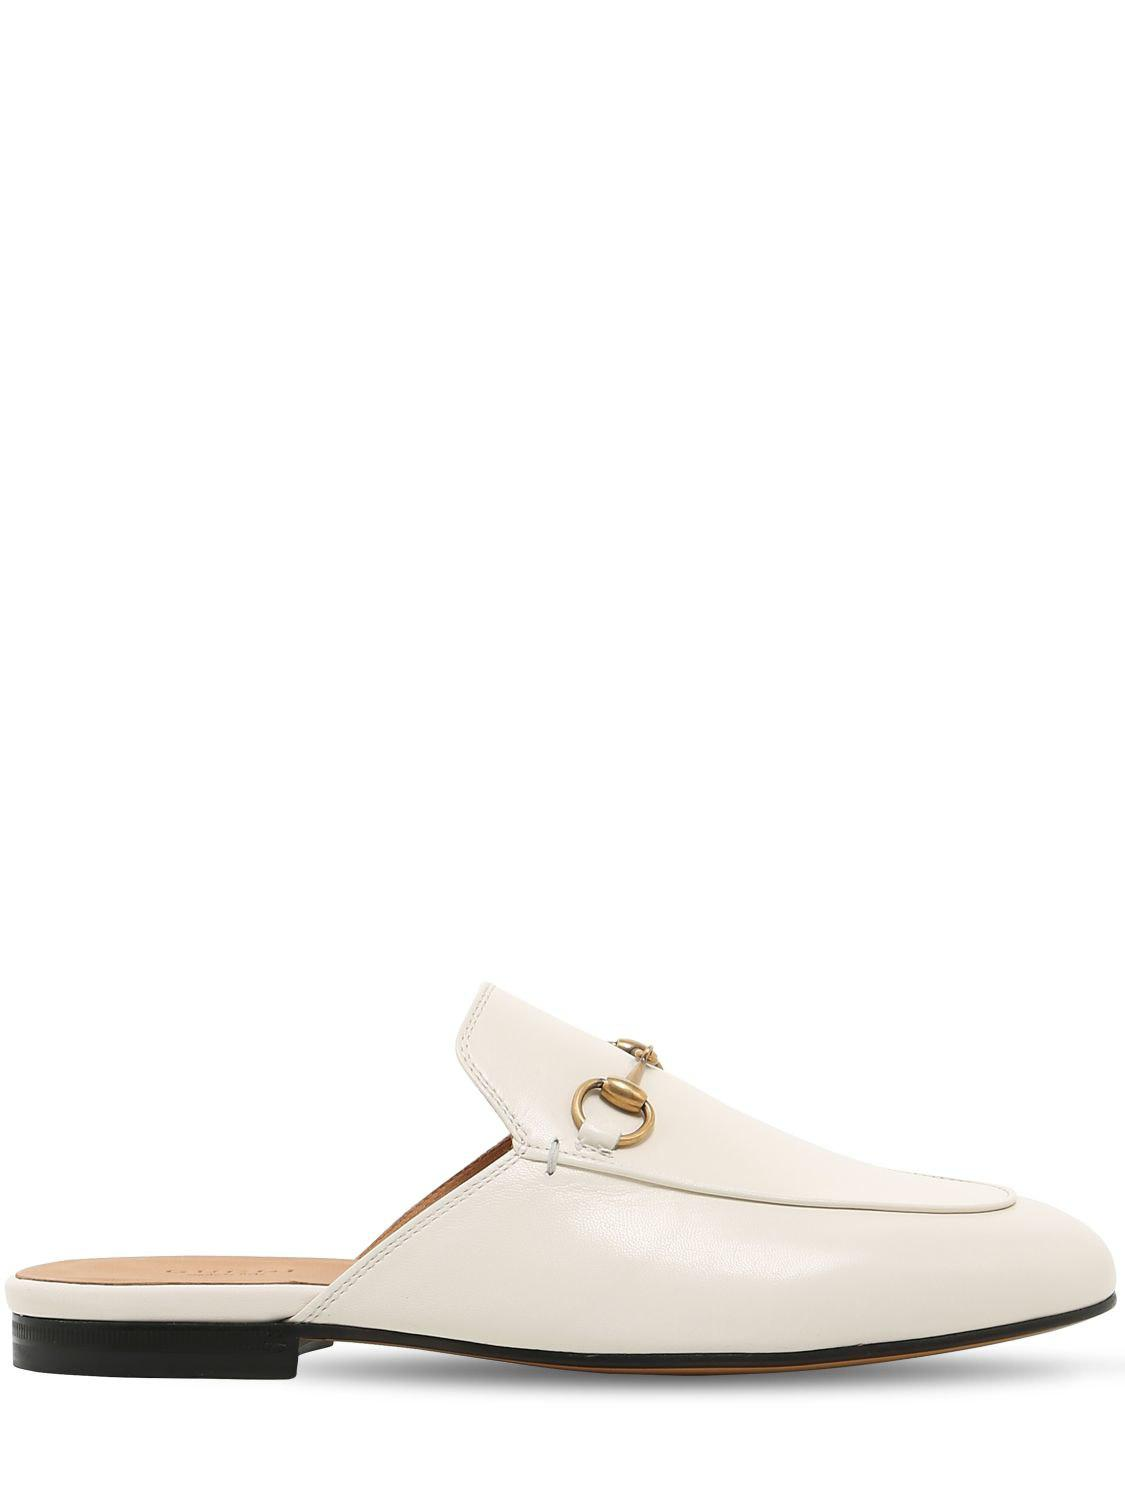 08fdc067162 Lyst - Gucci Princetown Loafer Mule in White